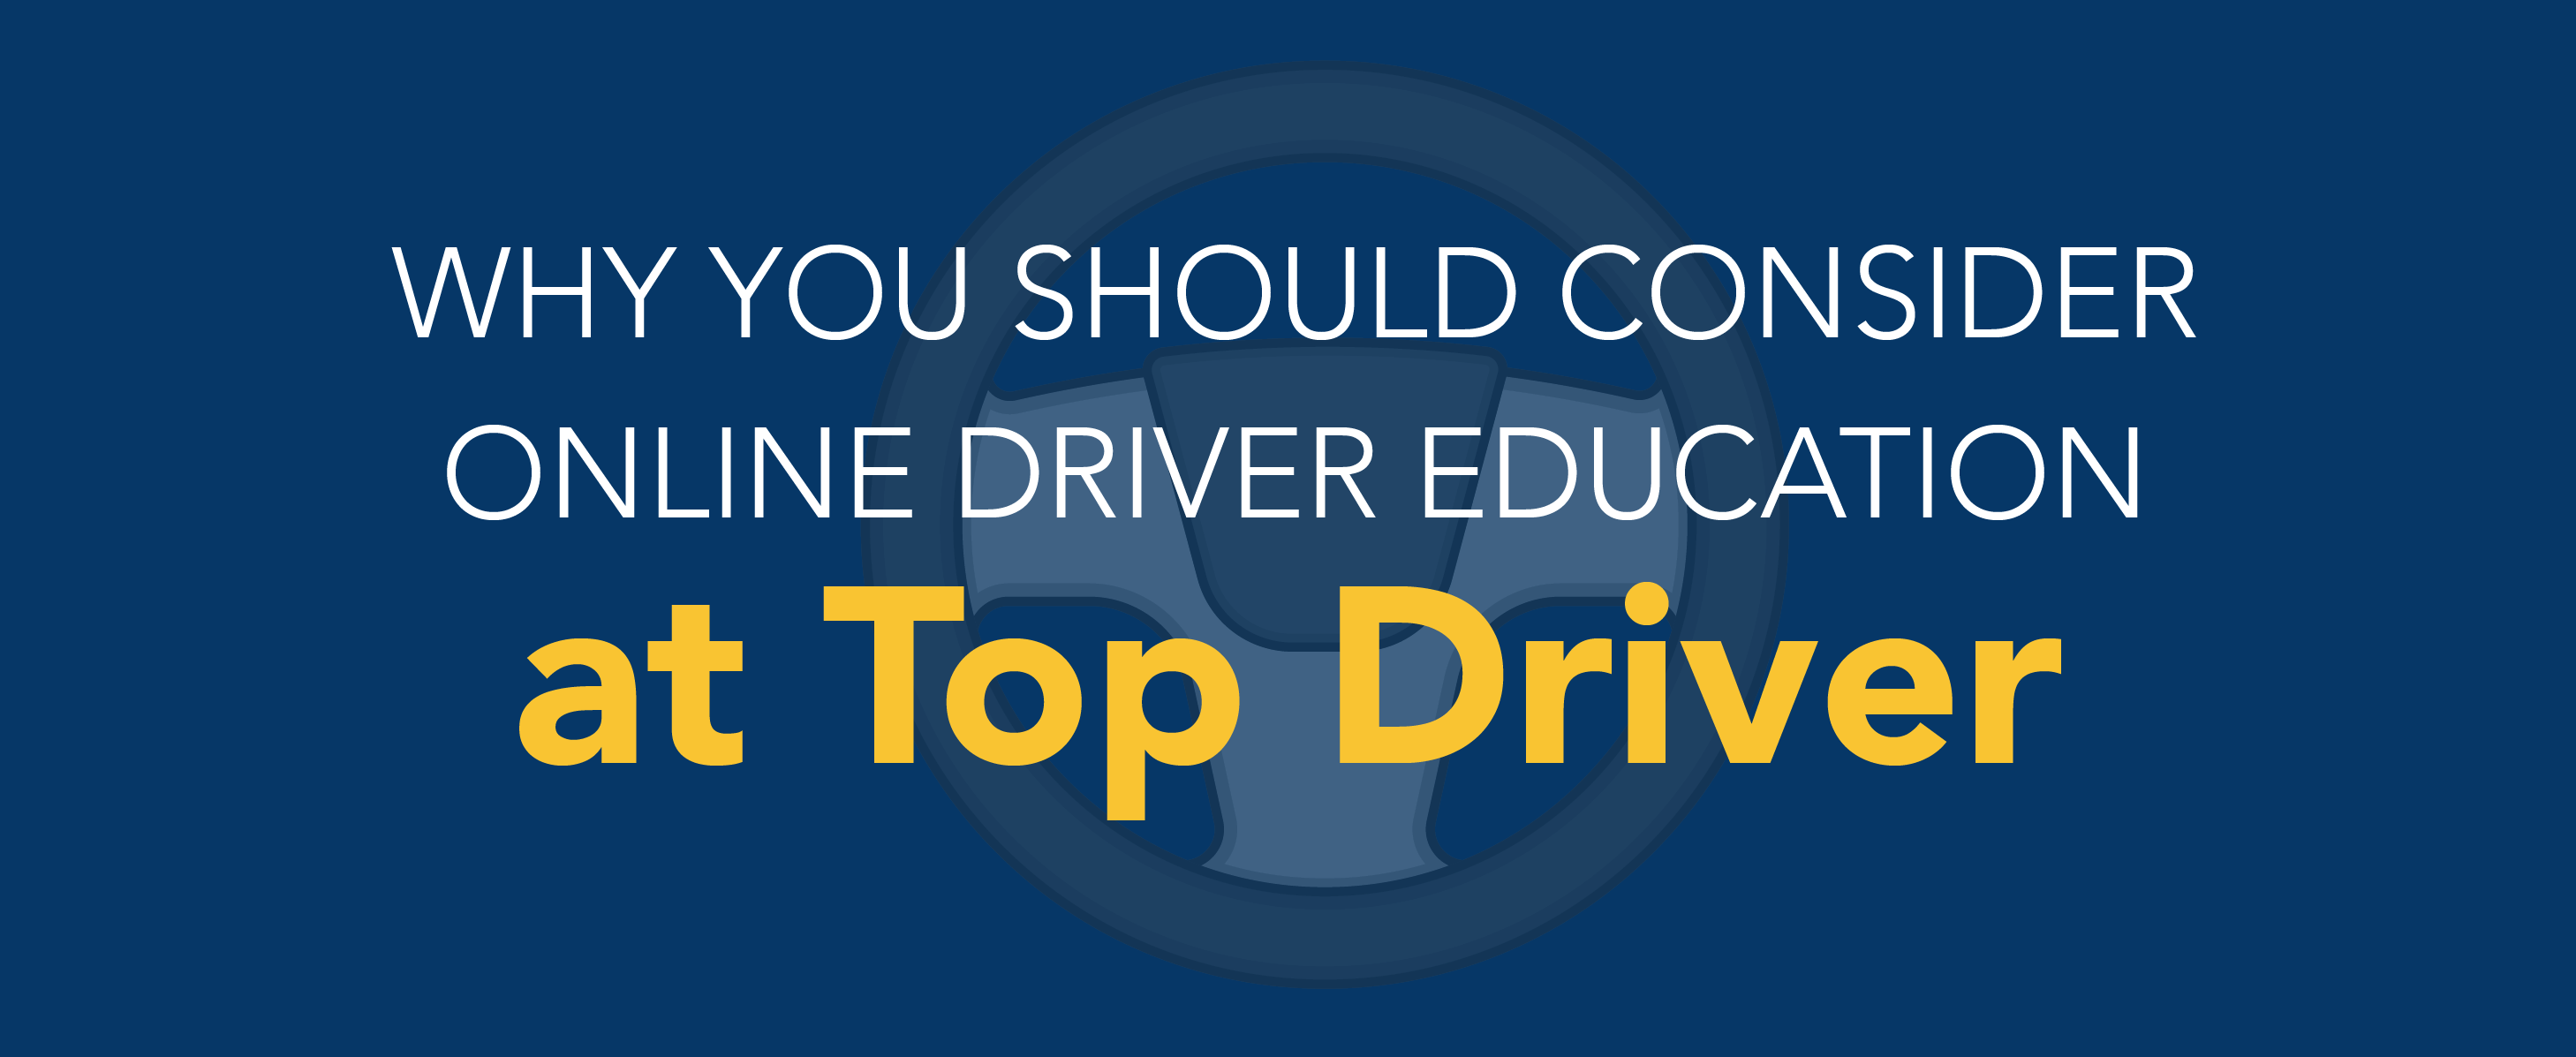 Why you should consider online driver education at Top Driver